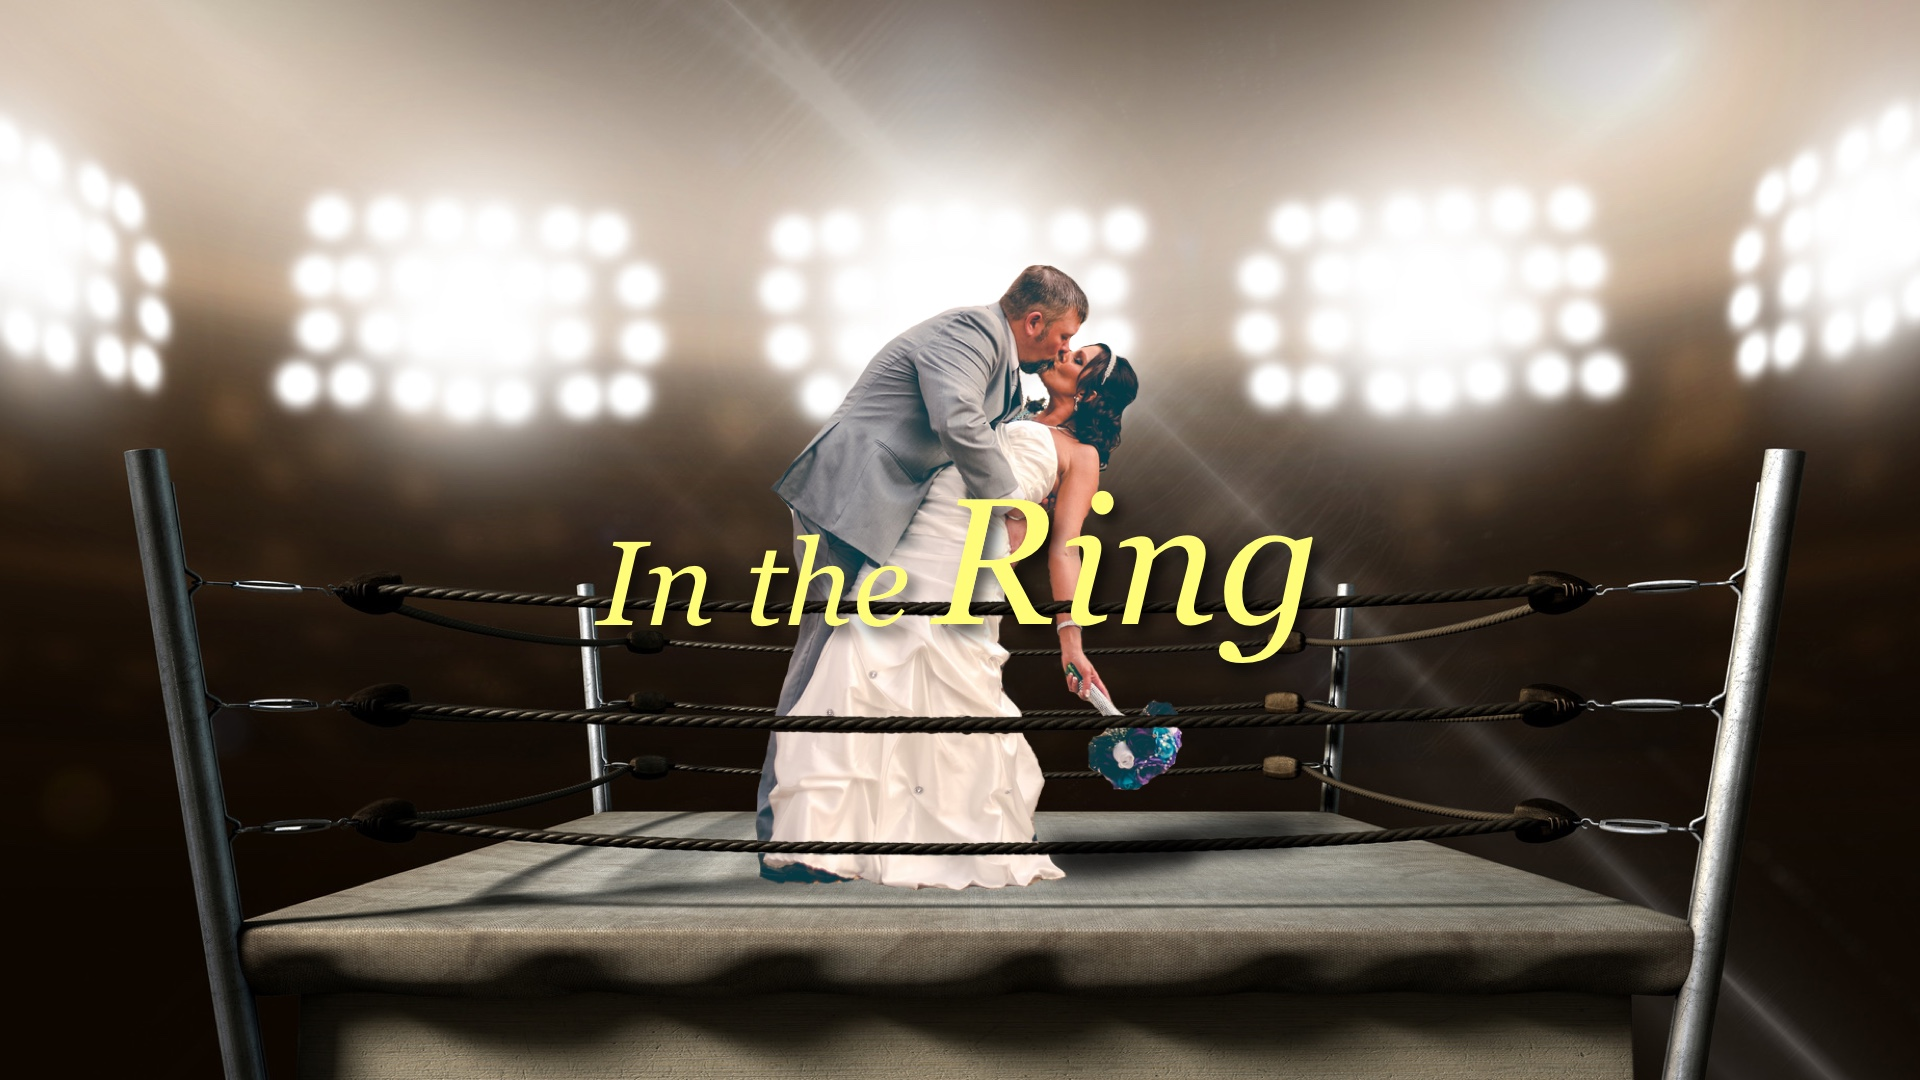 Getting In the Ring – Three Big Truths About Marriage